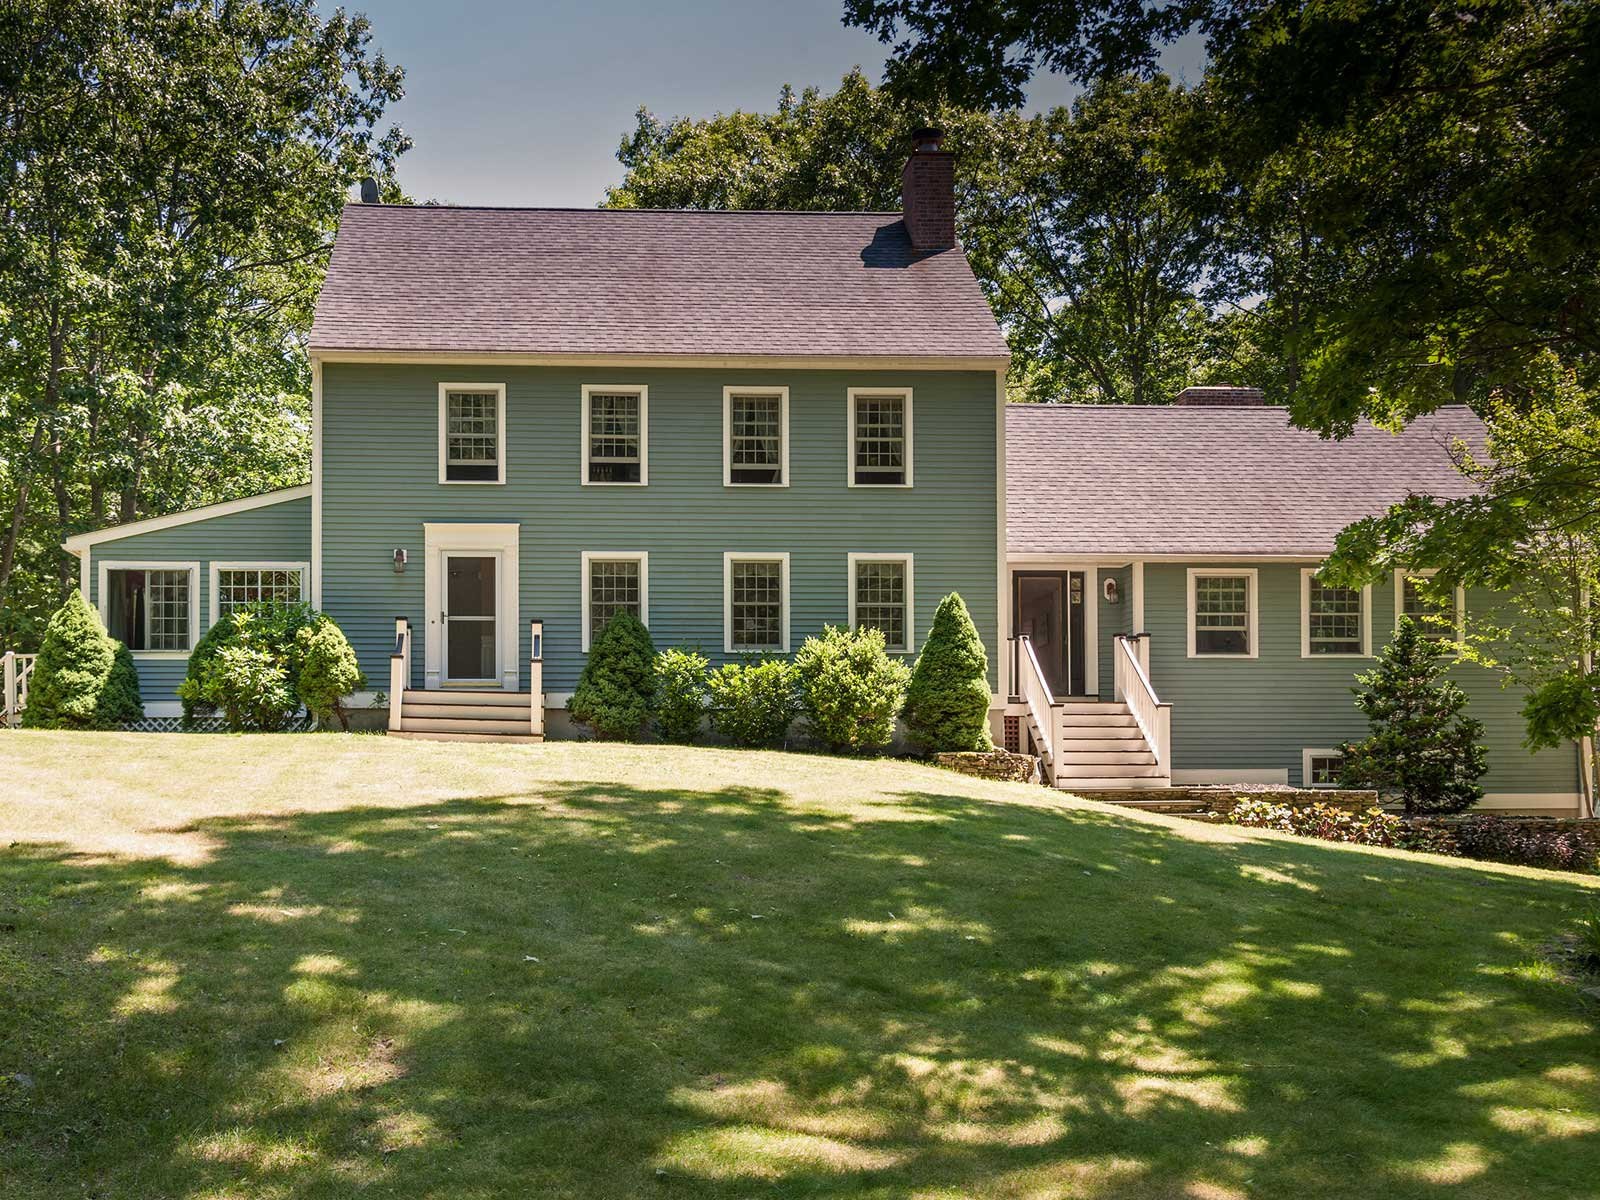 Single Family Home for Sale at Inviting Colonial in Kittery Point 8 Elizabeth Lane Kittery, Maine 03905 United States